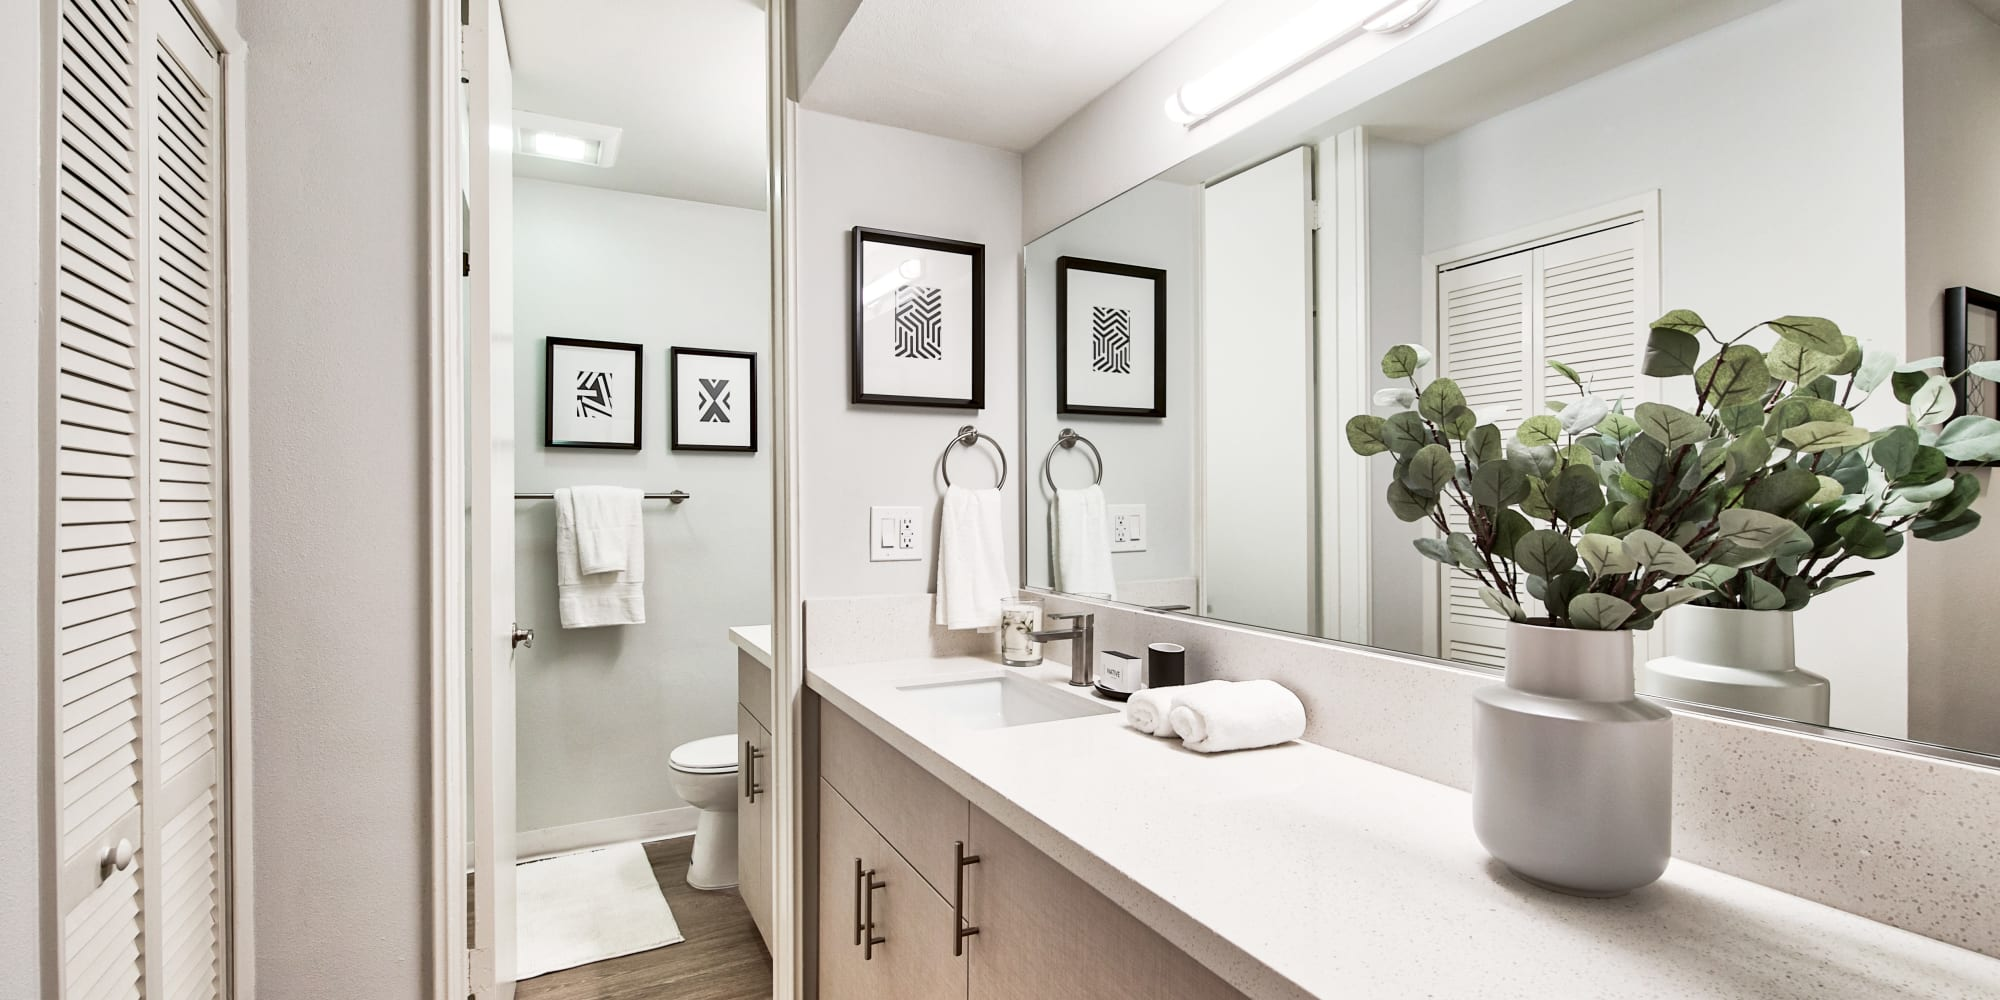 Large main bathroom with a vanity mirror at The Meadows in Culver City, California